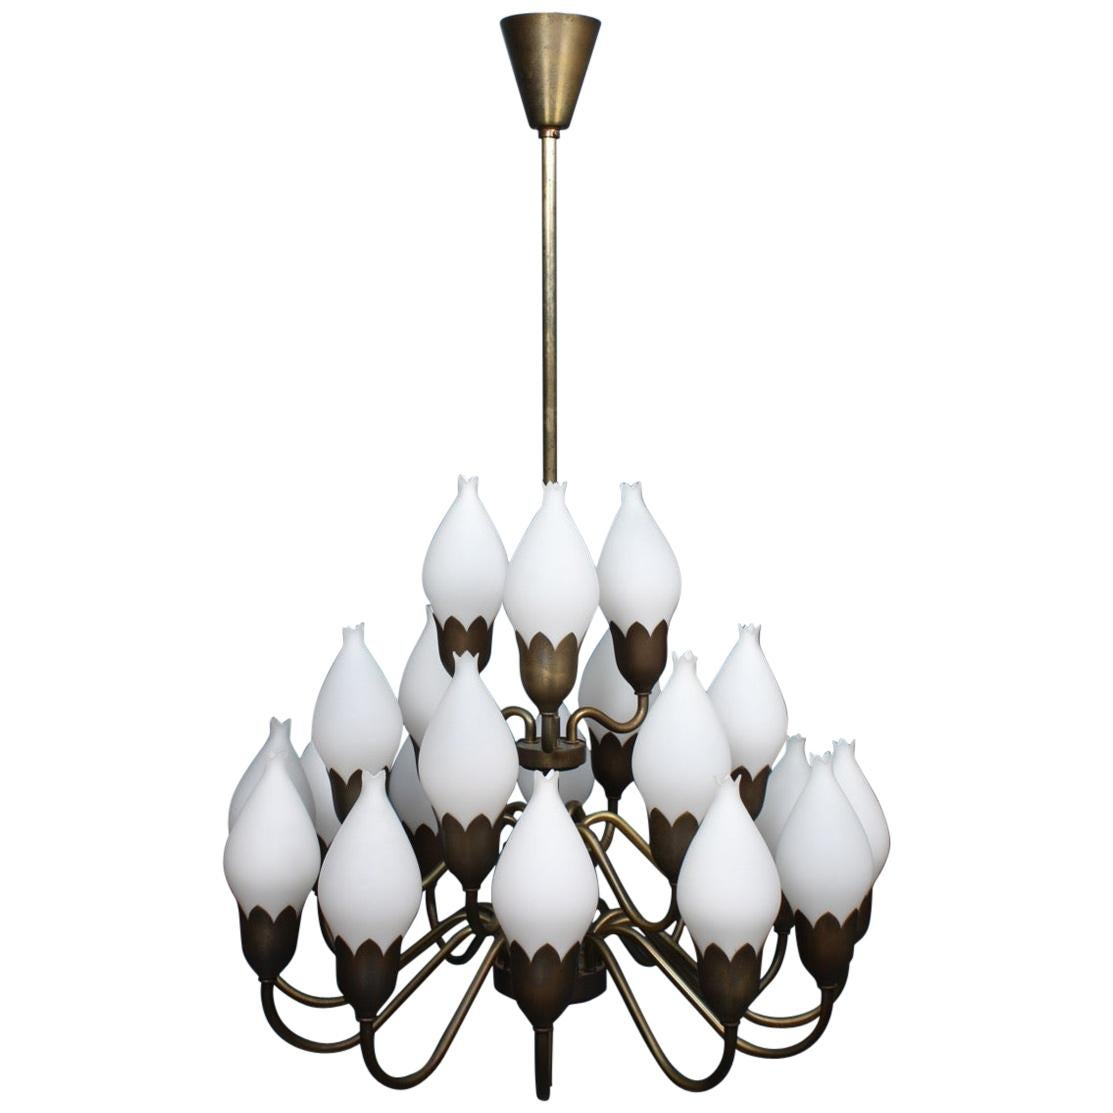 Danish Midcentury Tulip Chandelier in Brass and Glass by Fog & Mørup, 1950s